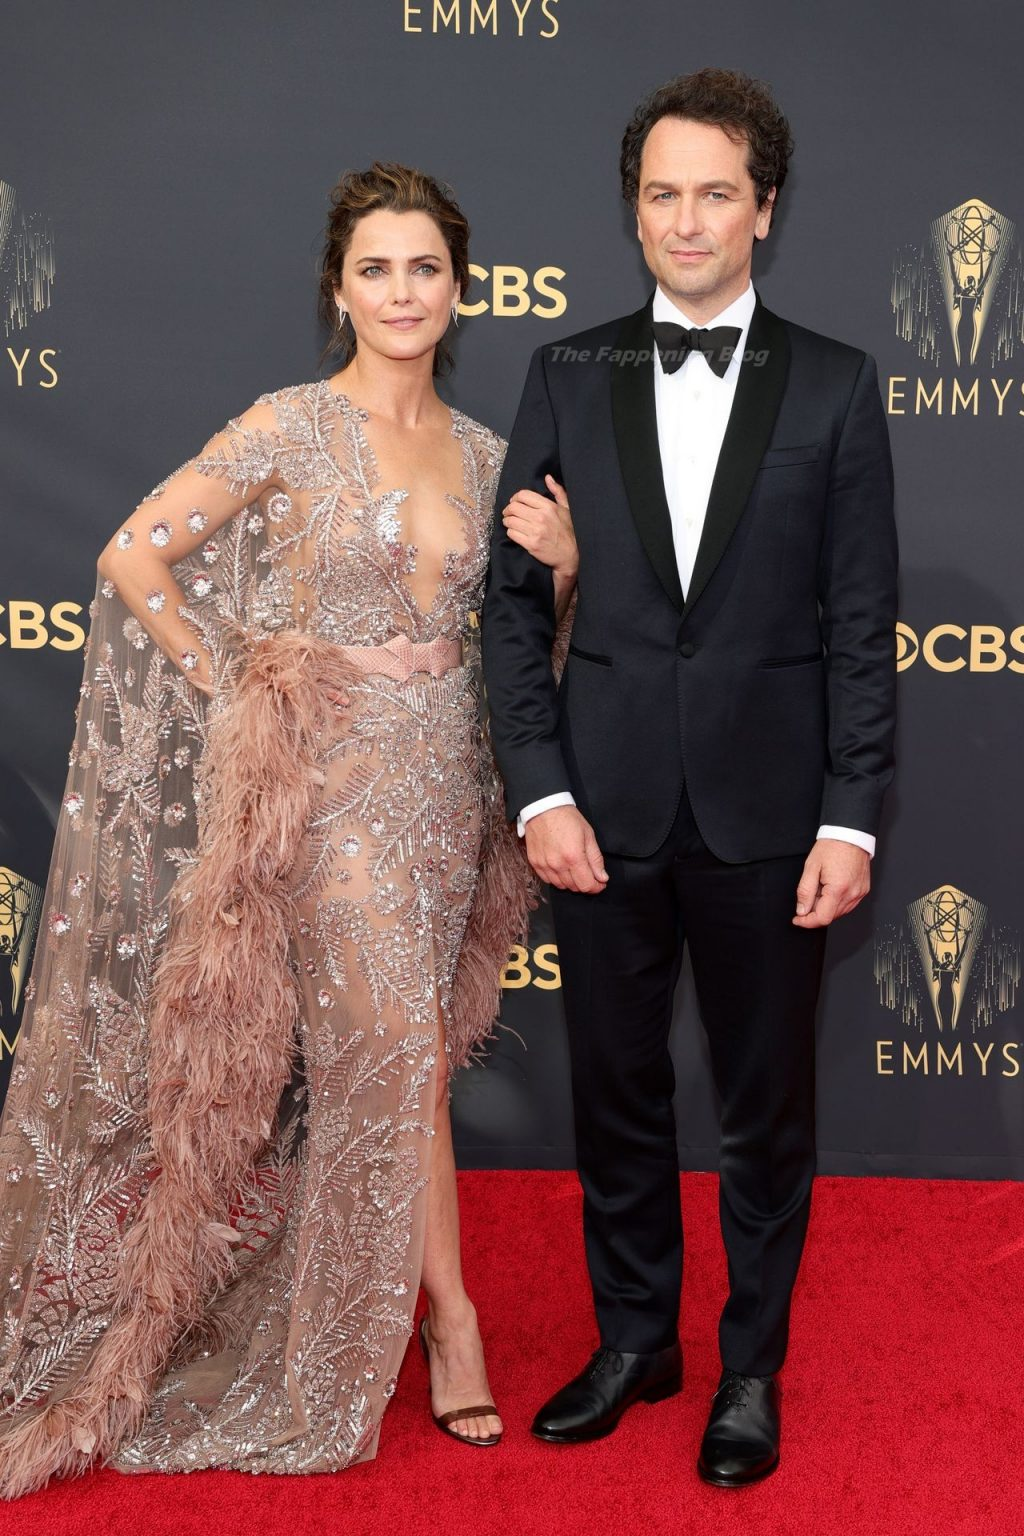 Keri Russell Shows Off Her Tits at the 73rd Primetime Emmy Awards in Los Angeles (14 Photos)